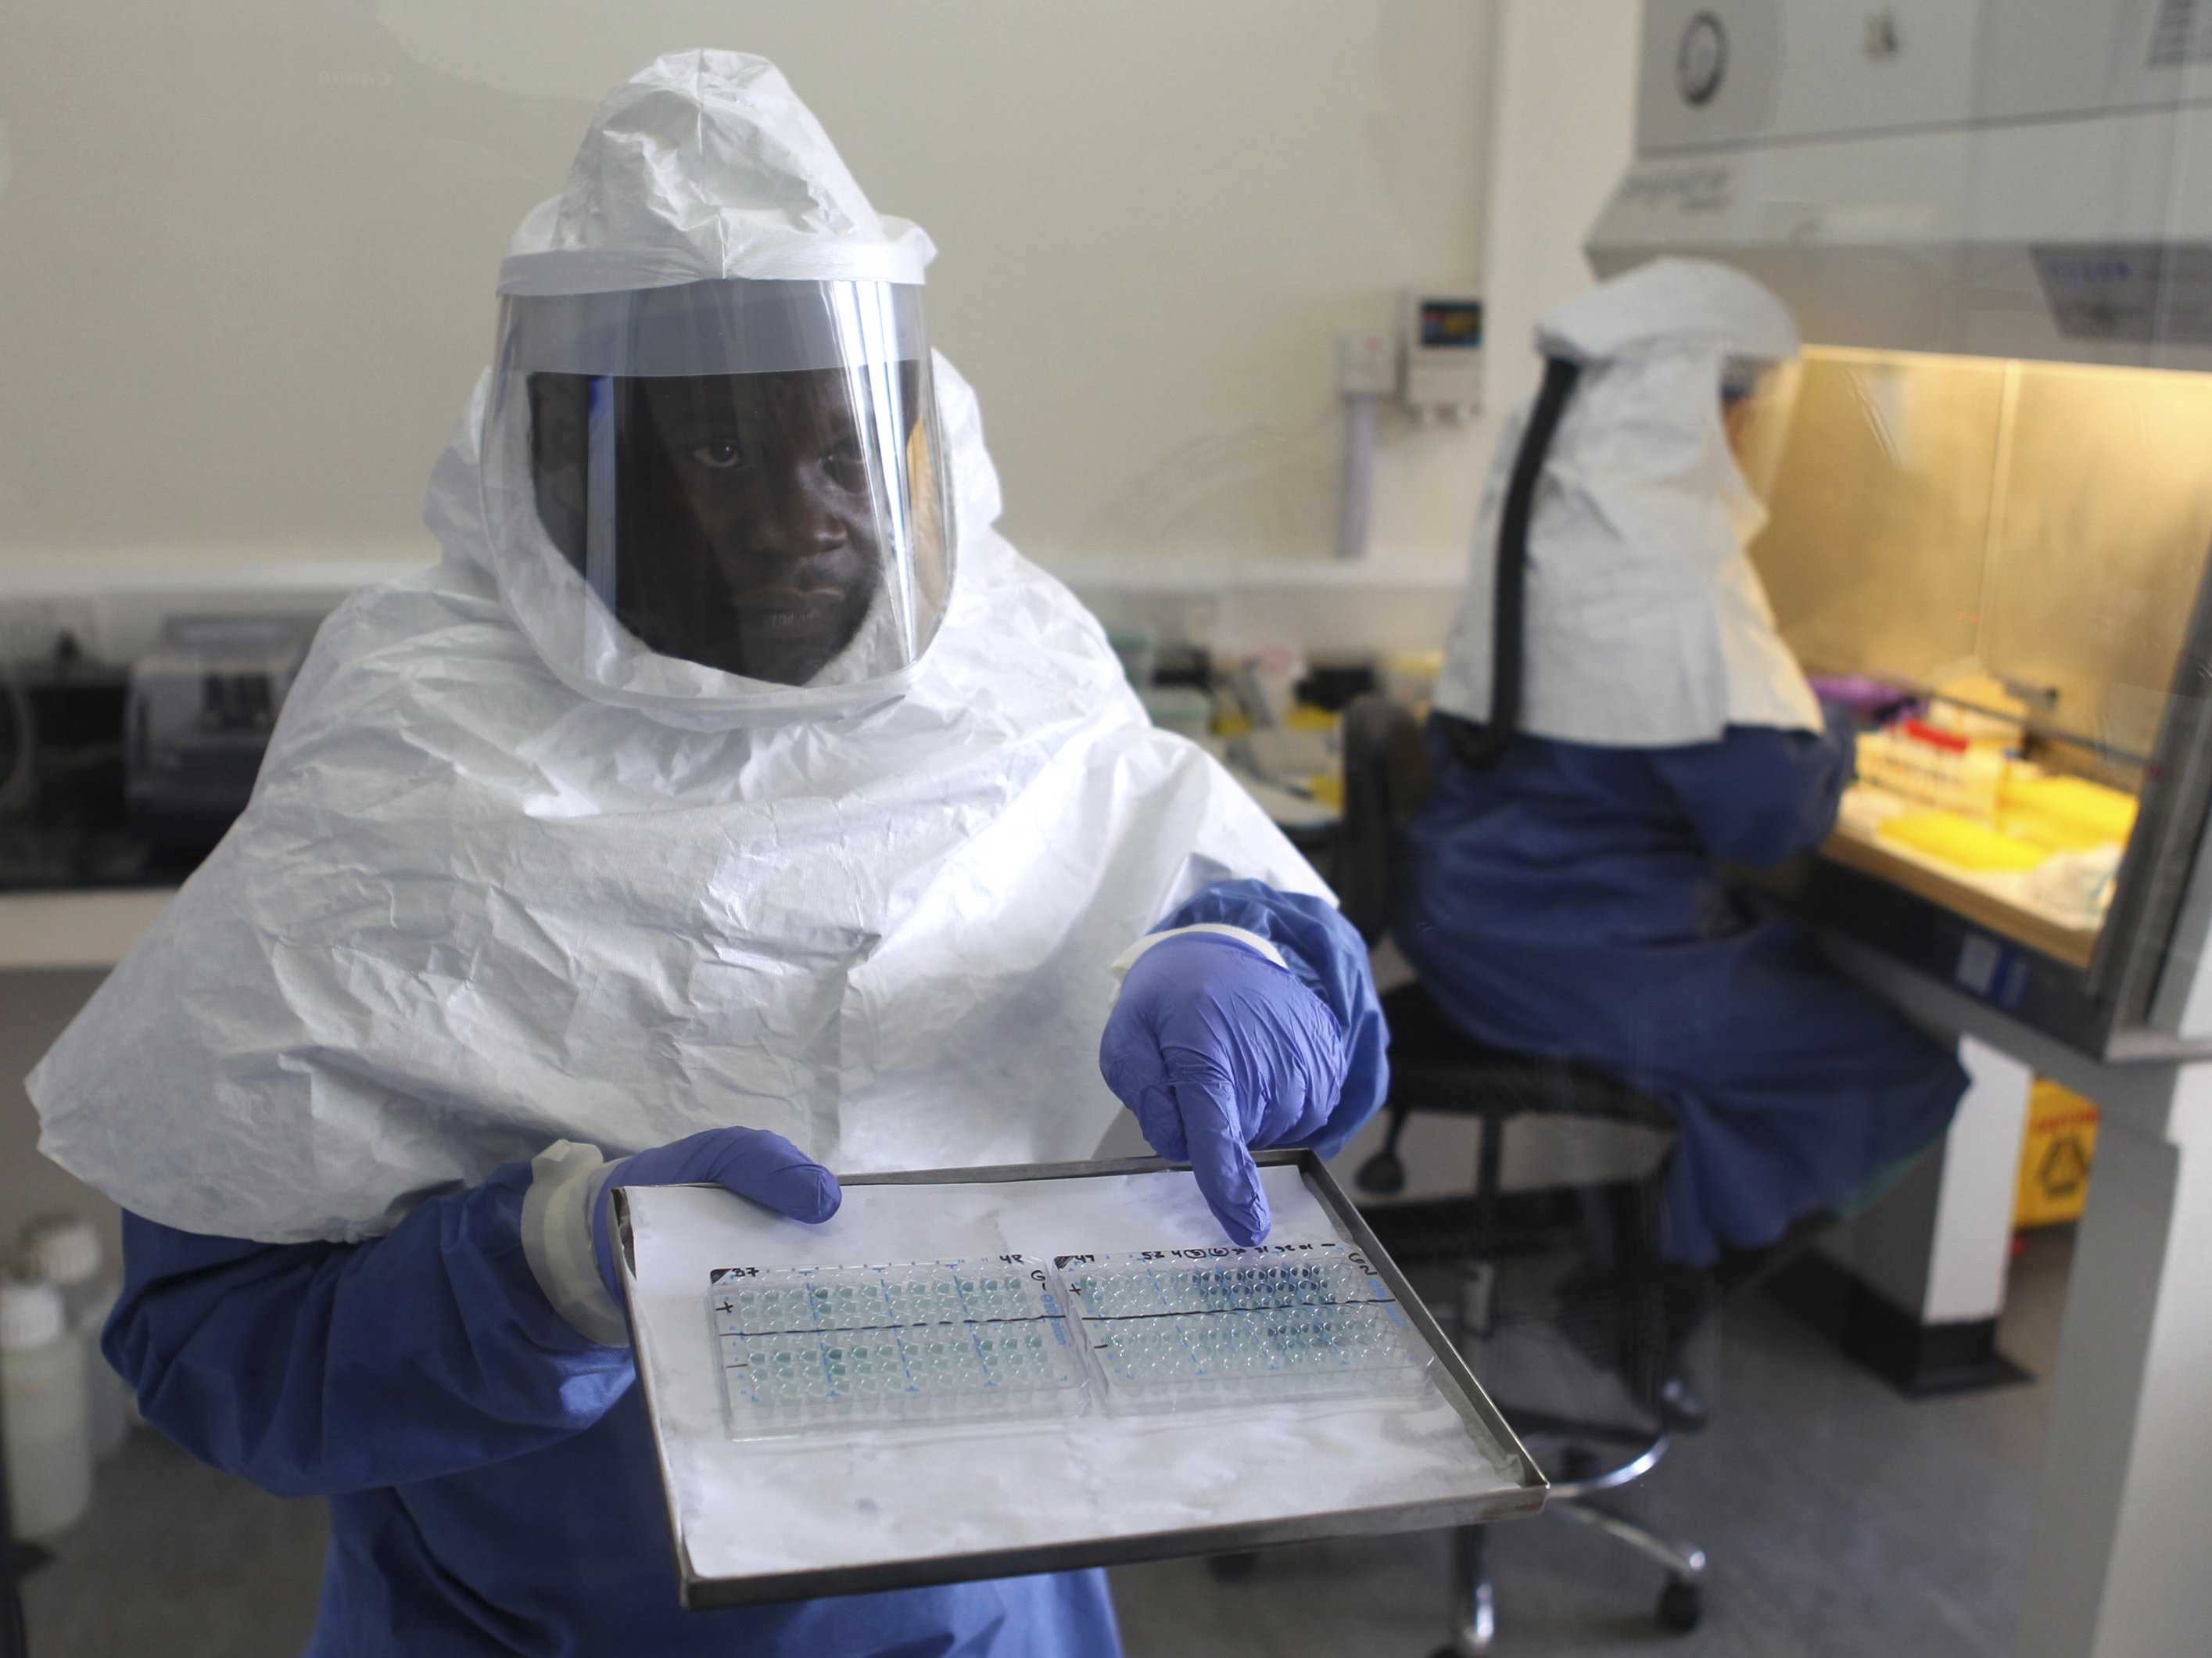 ebola-outbreak-responsible-for-59-deaths-confirmed-in-west-africa